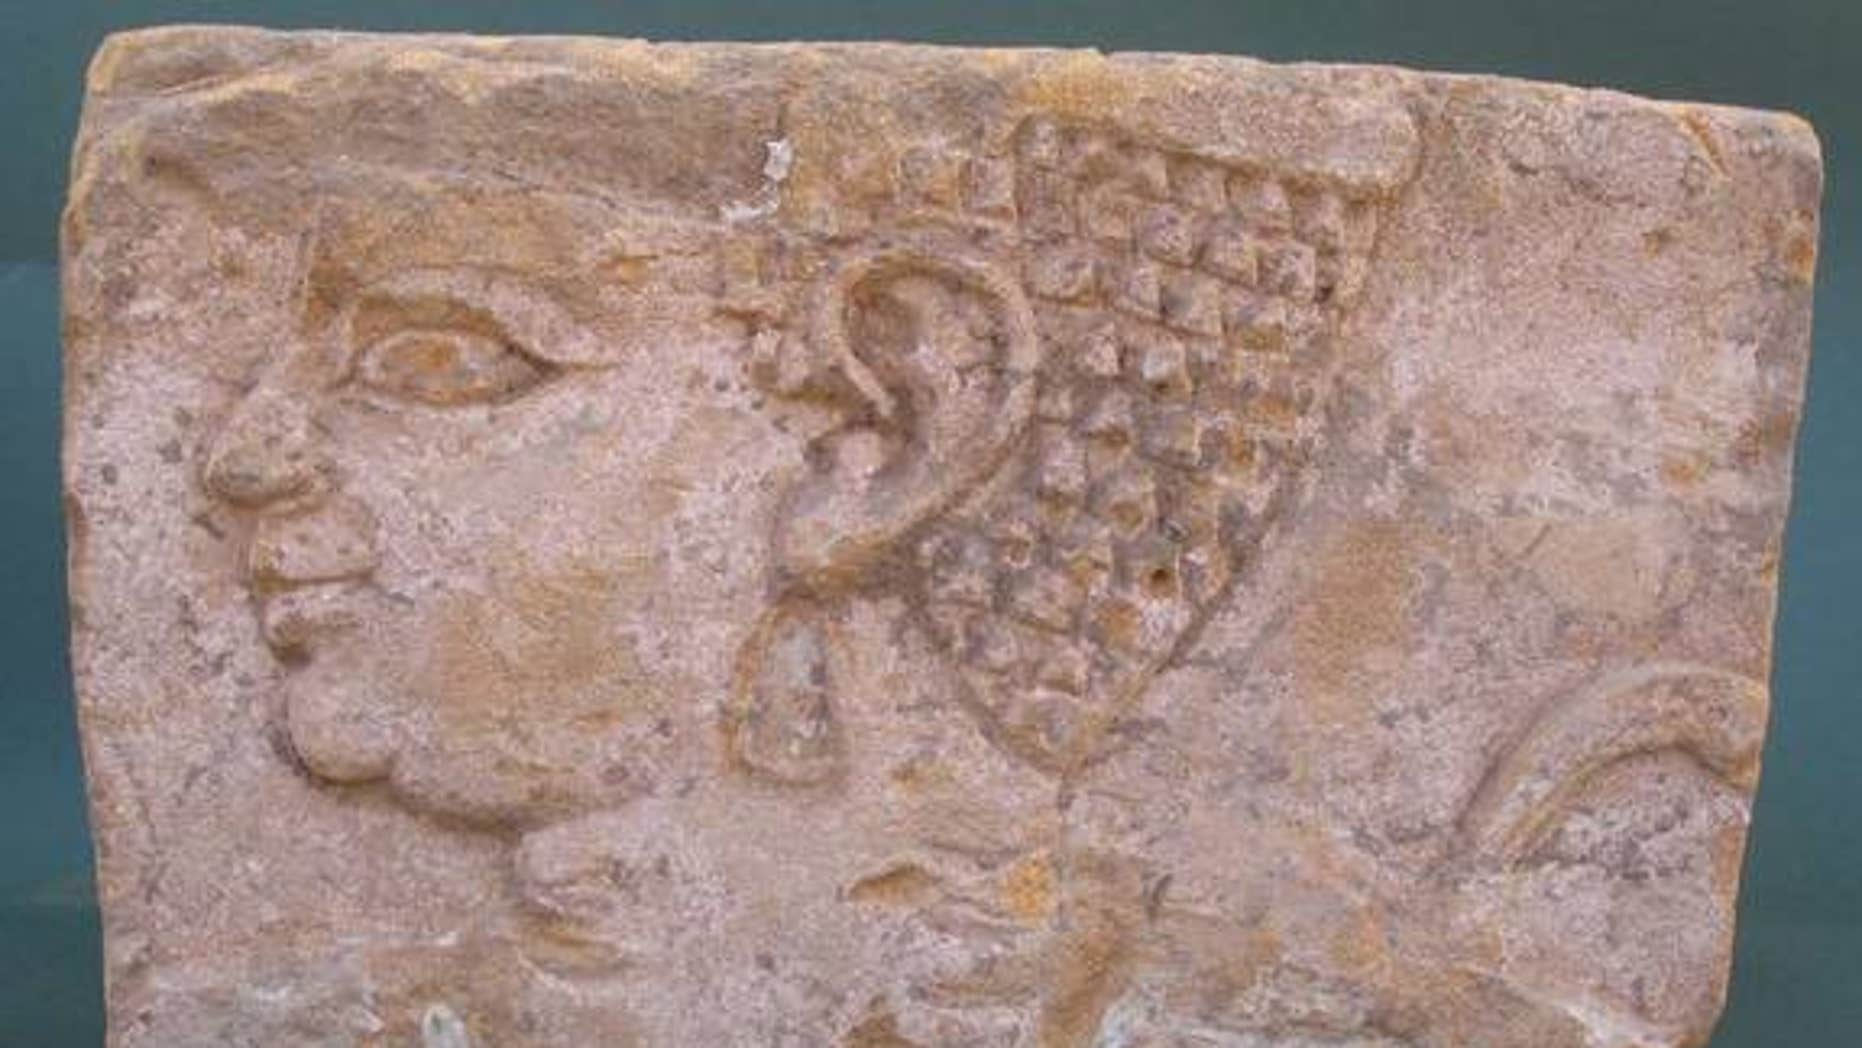 Dating back around 2,000 years and discovered in a palace in the ancient city of Meroe in Sudan, this relief appears to show a princess who is, fashionably, overweight.